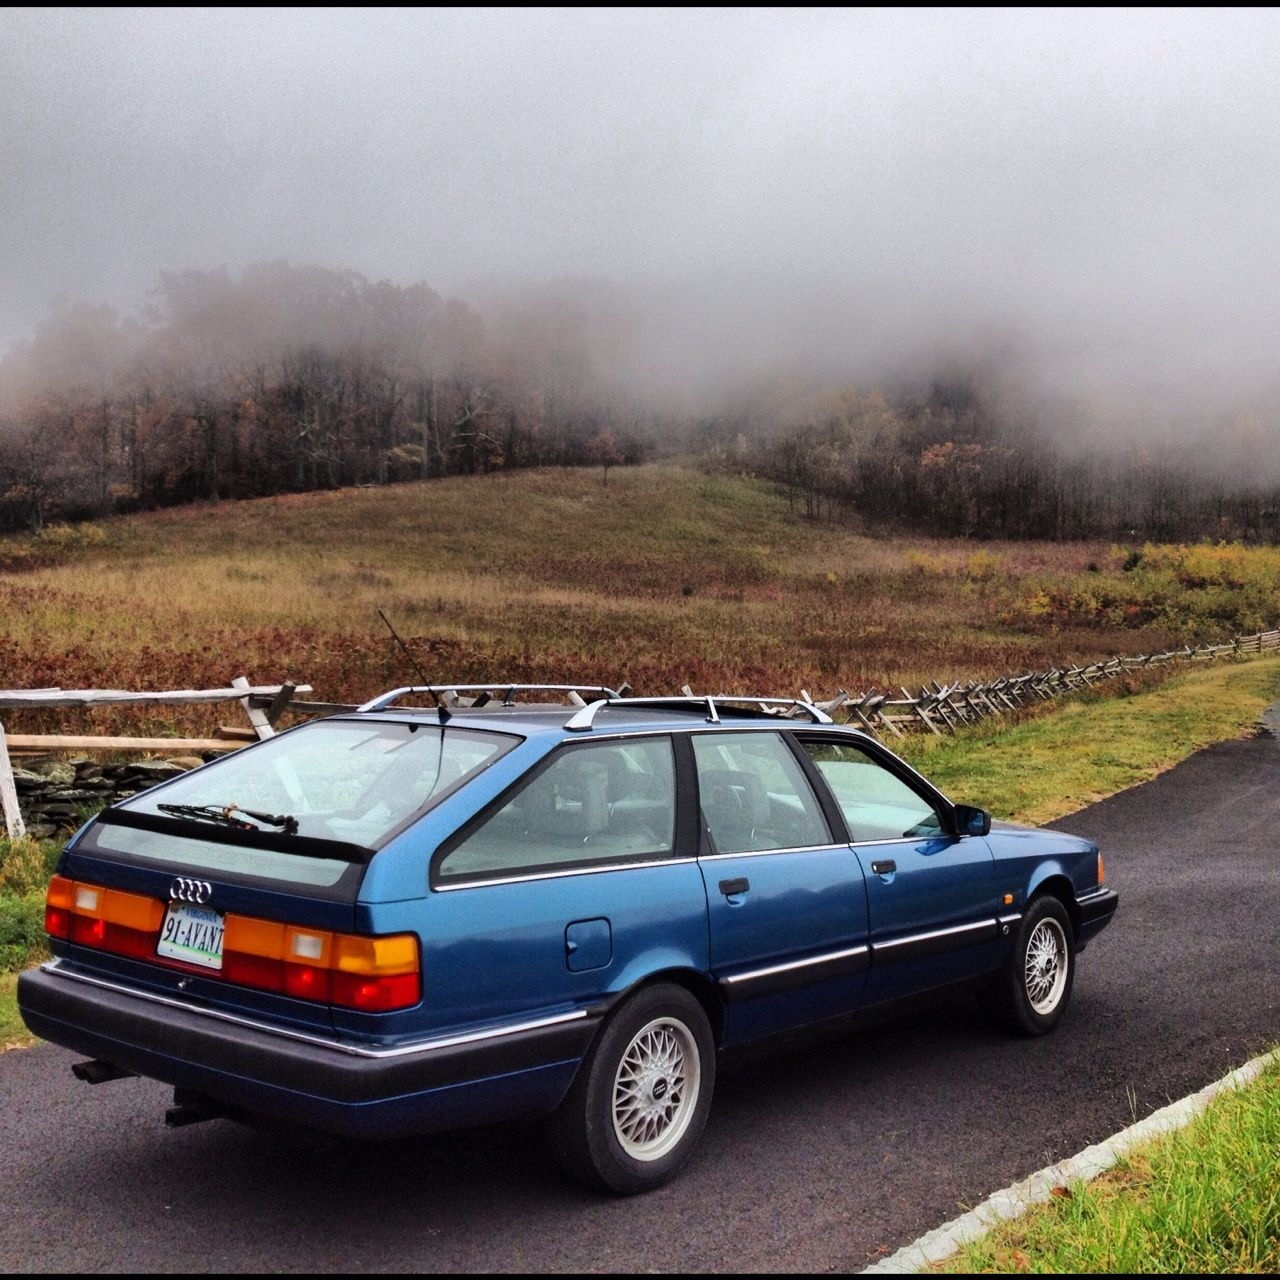 Audi 5000 Wagon....these still look amazing! In Europe 100/200 Avant